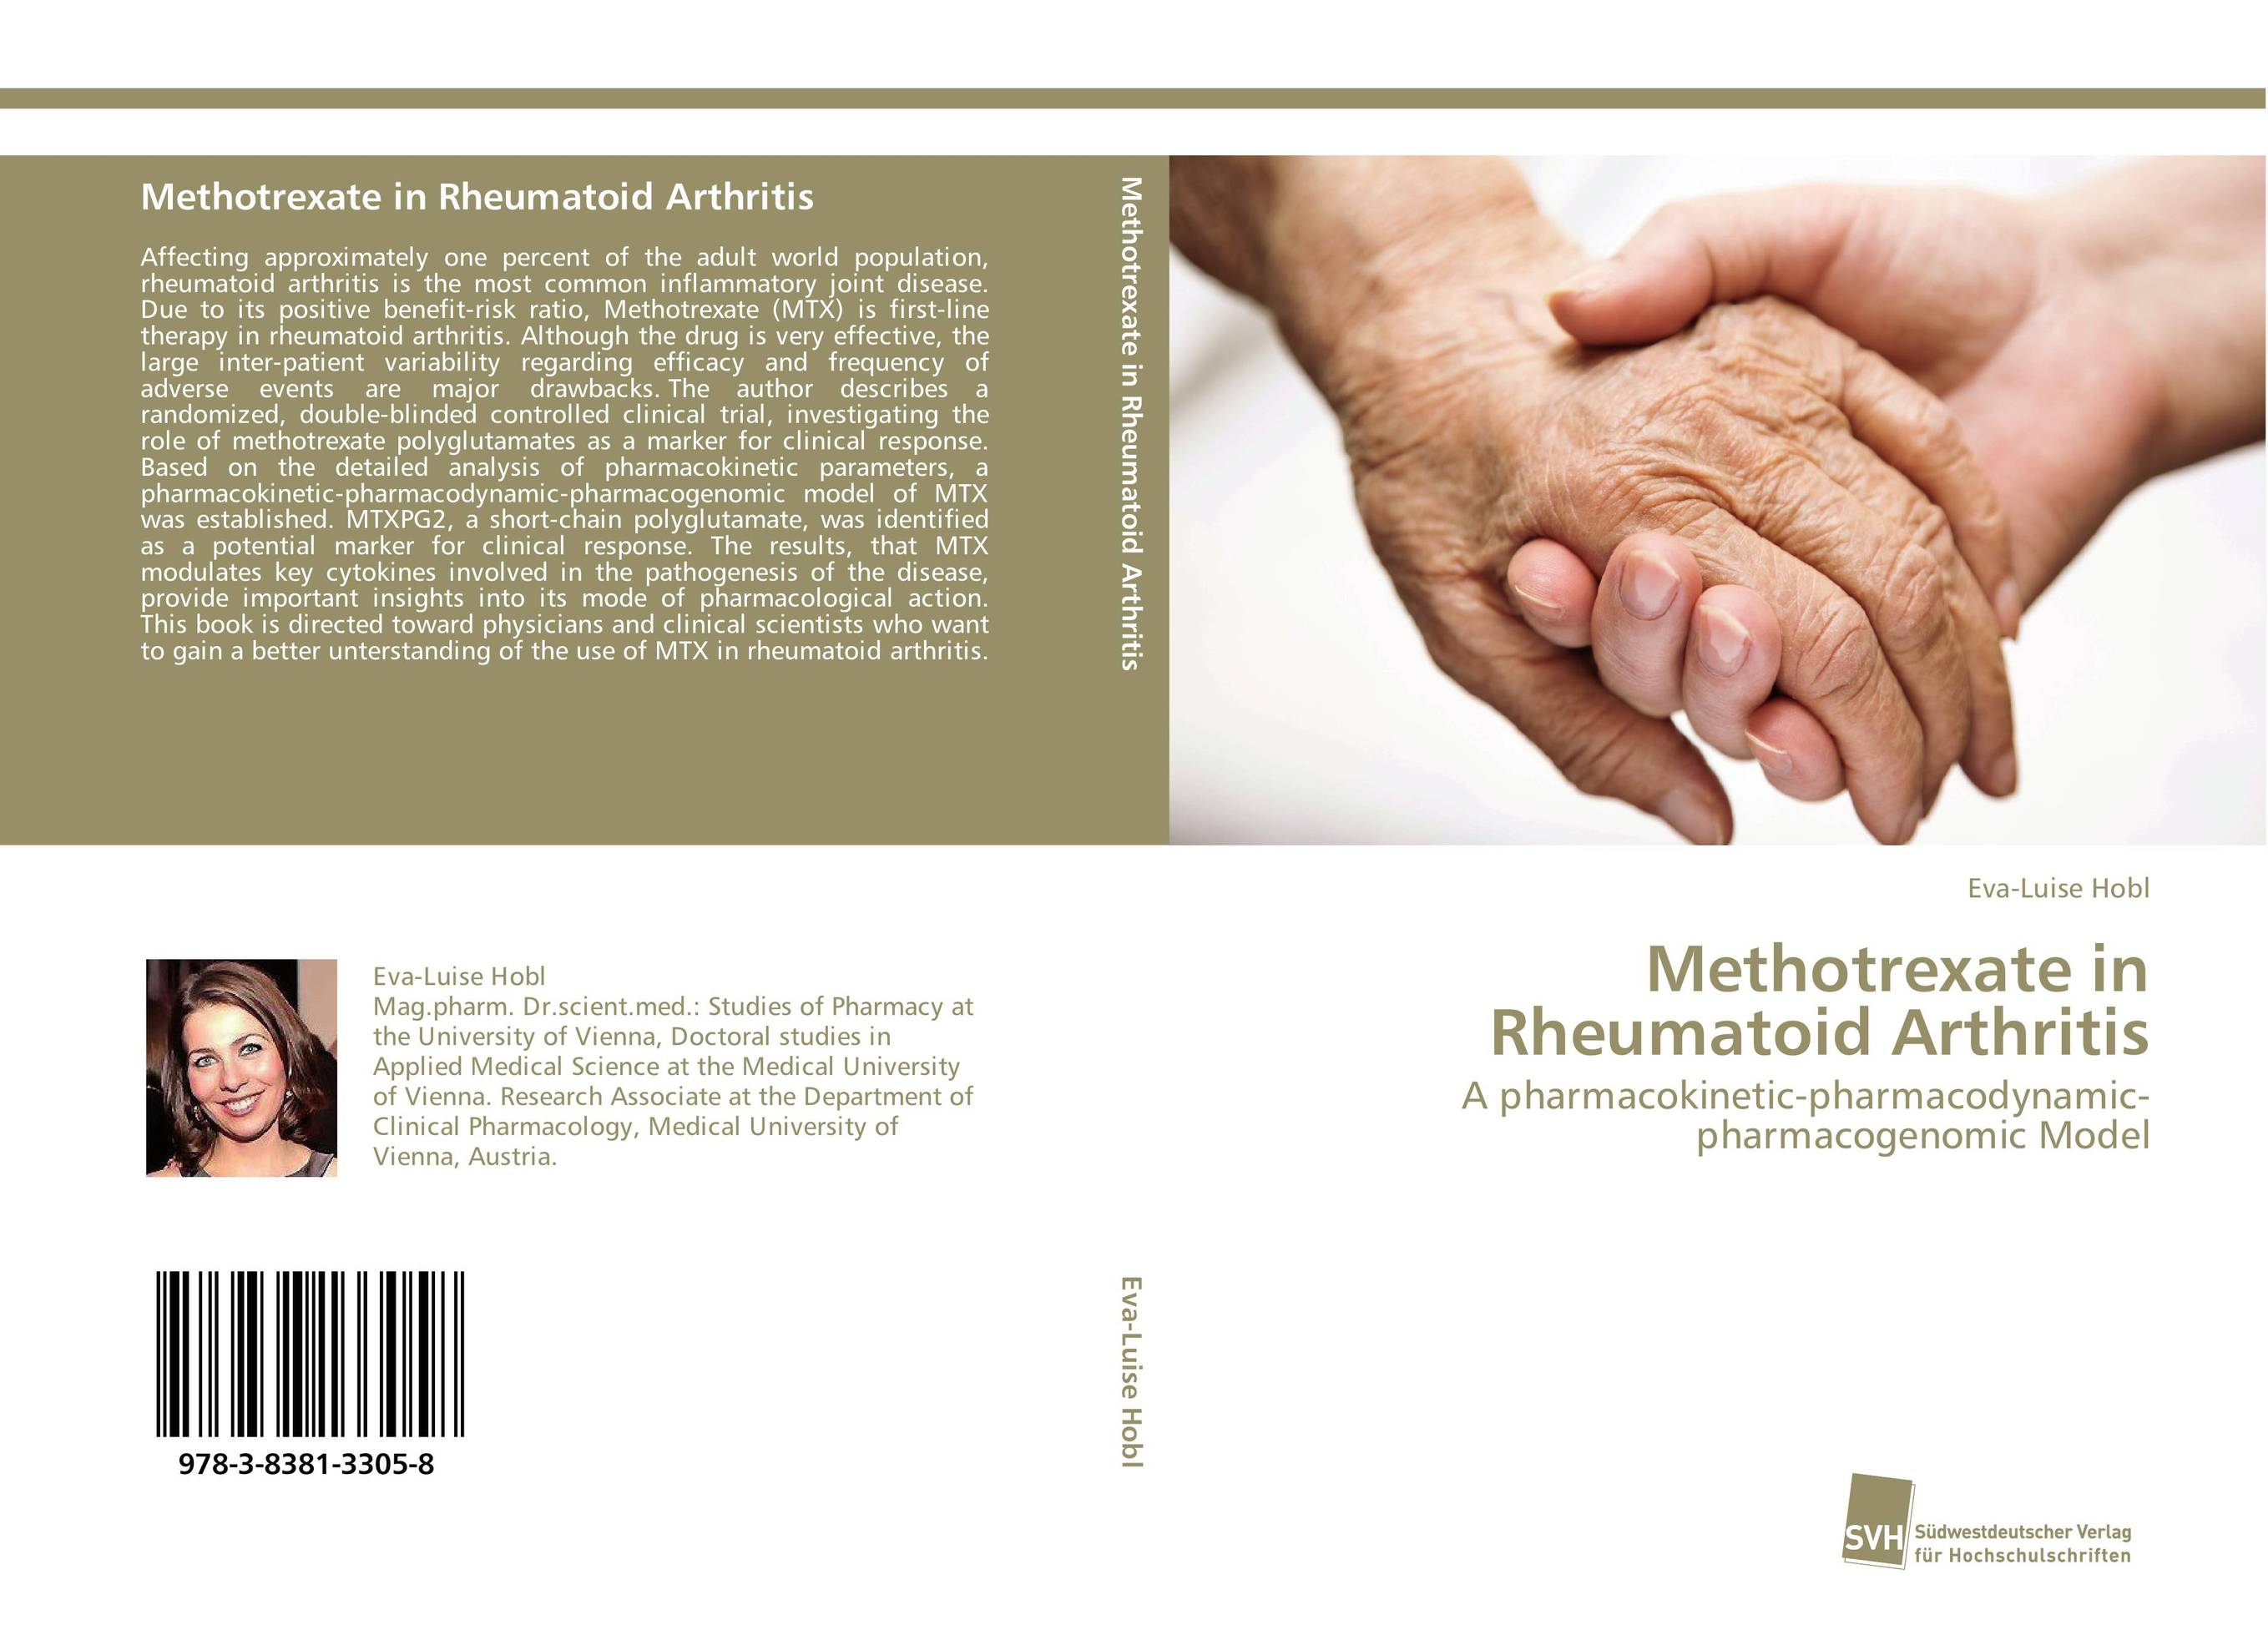 Methotrexate in Rheumatoid Arthritis new techniques for early diagnosis of rheumatoid arthritis